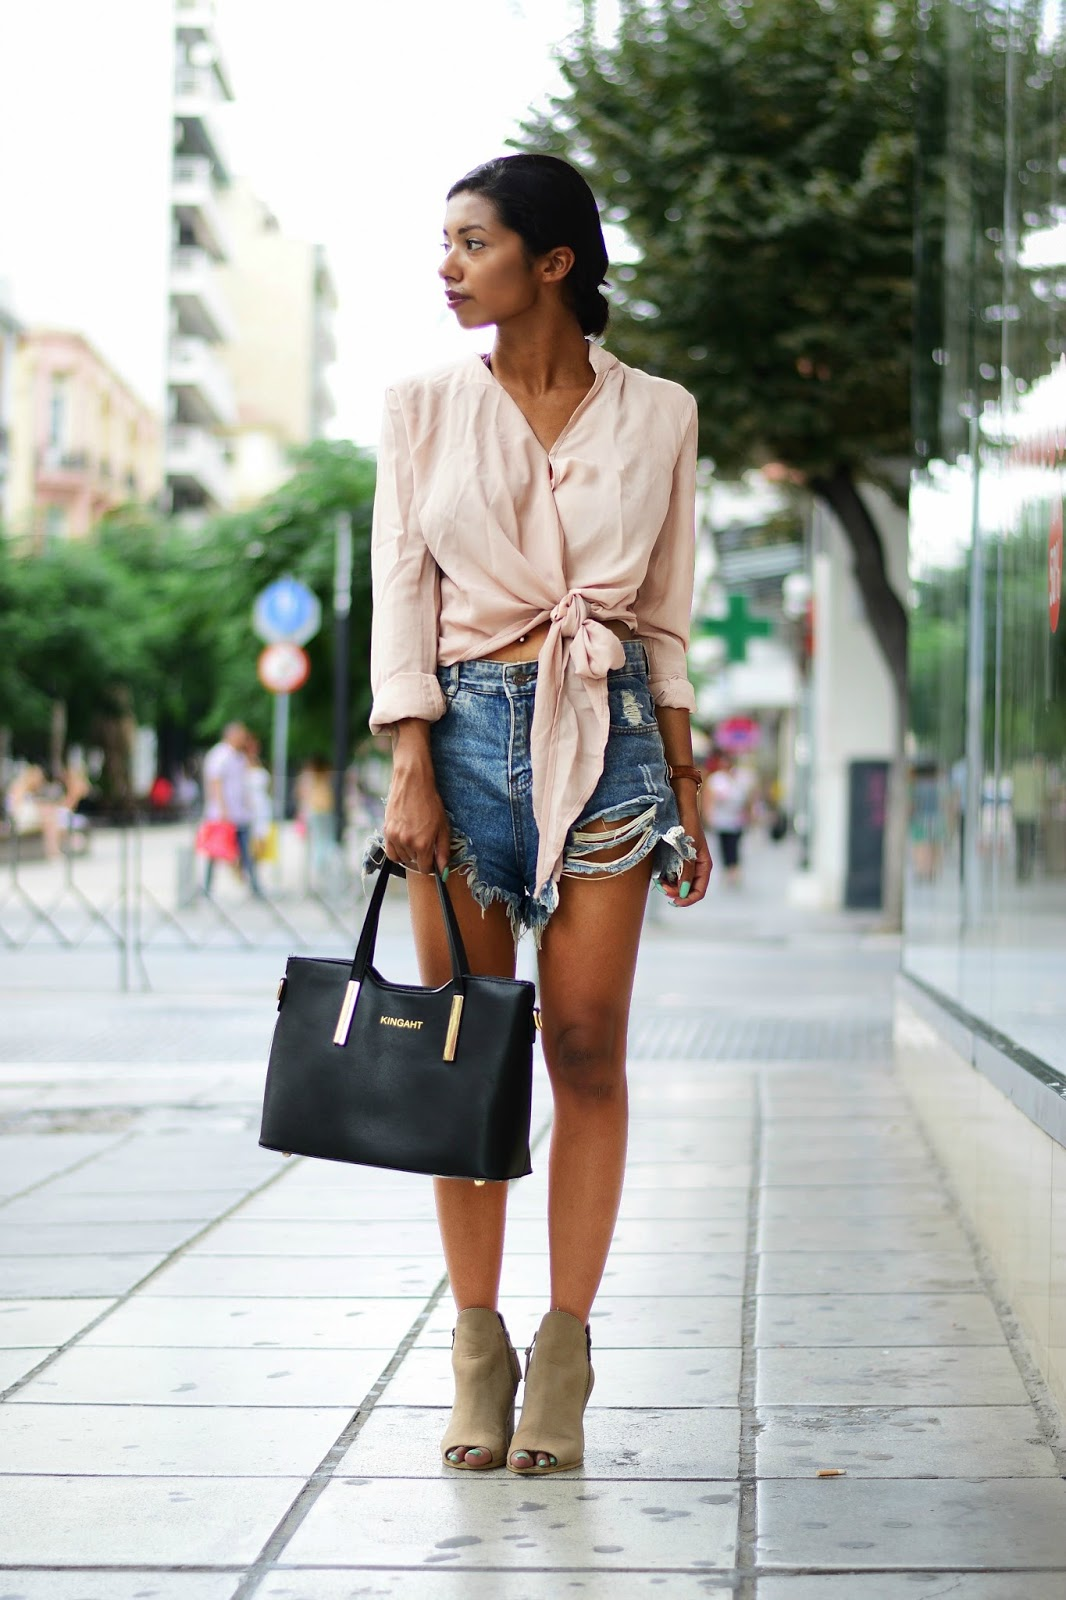 outfit ideas for casual summer looks with denim shorts